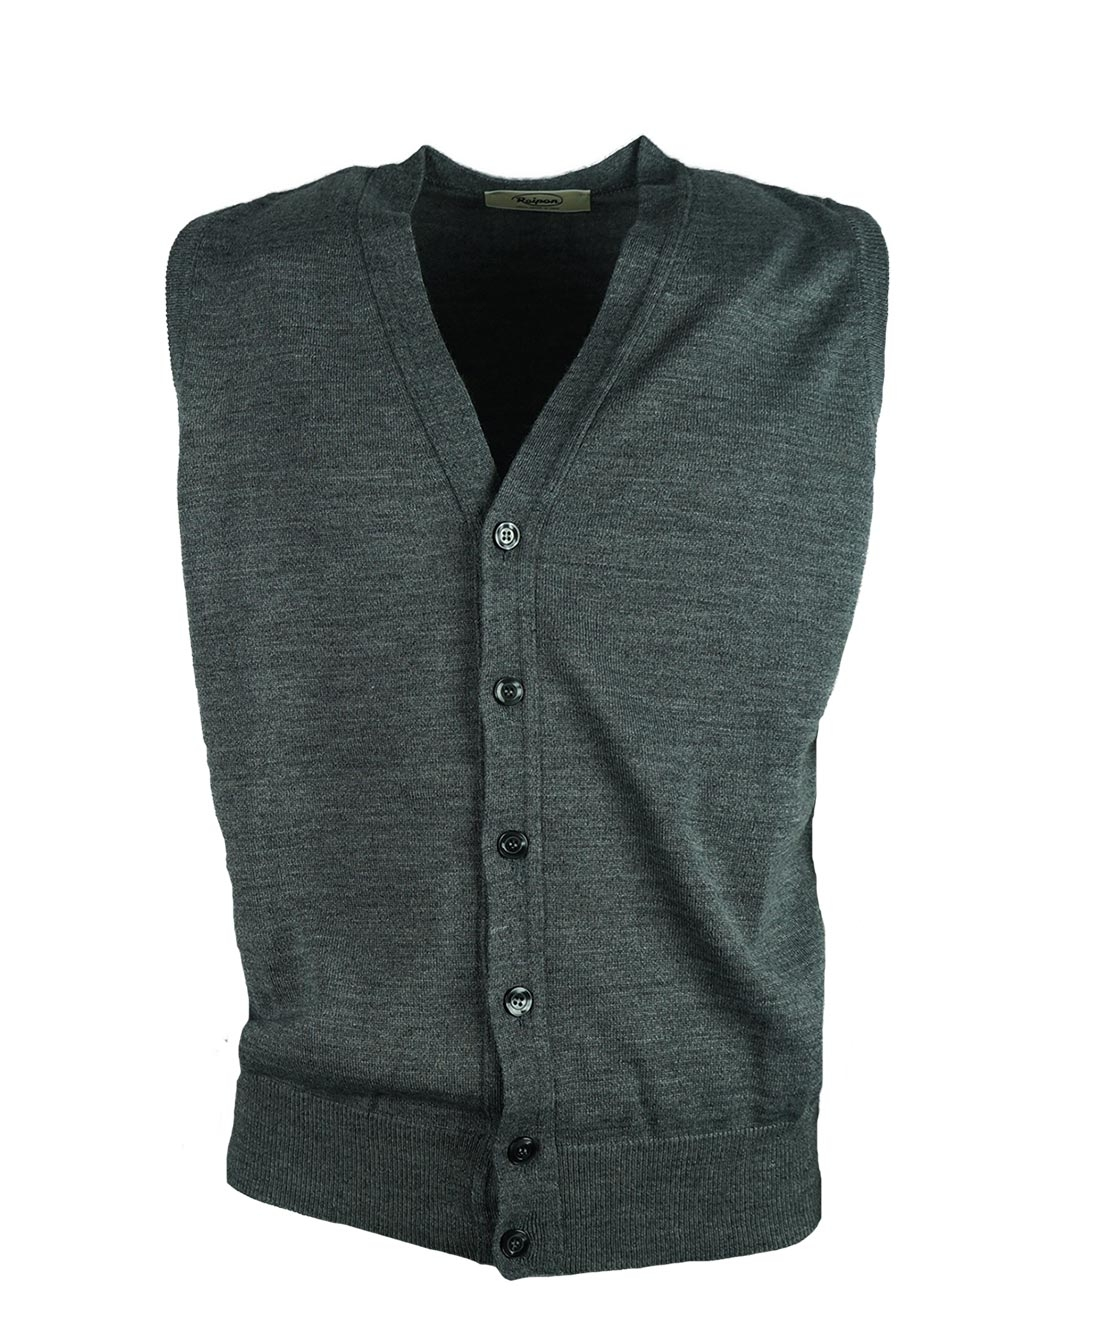 gilet homme sans manches boutonn cou en v laine m rinos raipan ebay. Black Bedroom Furniture Sets. Home Design Ideas